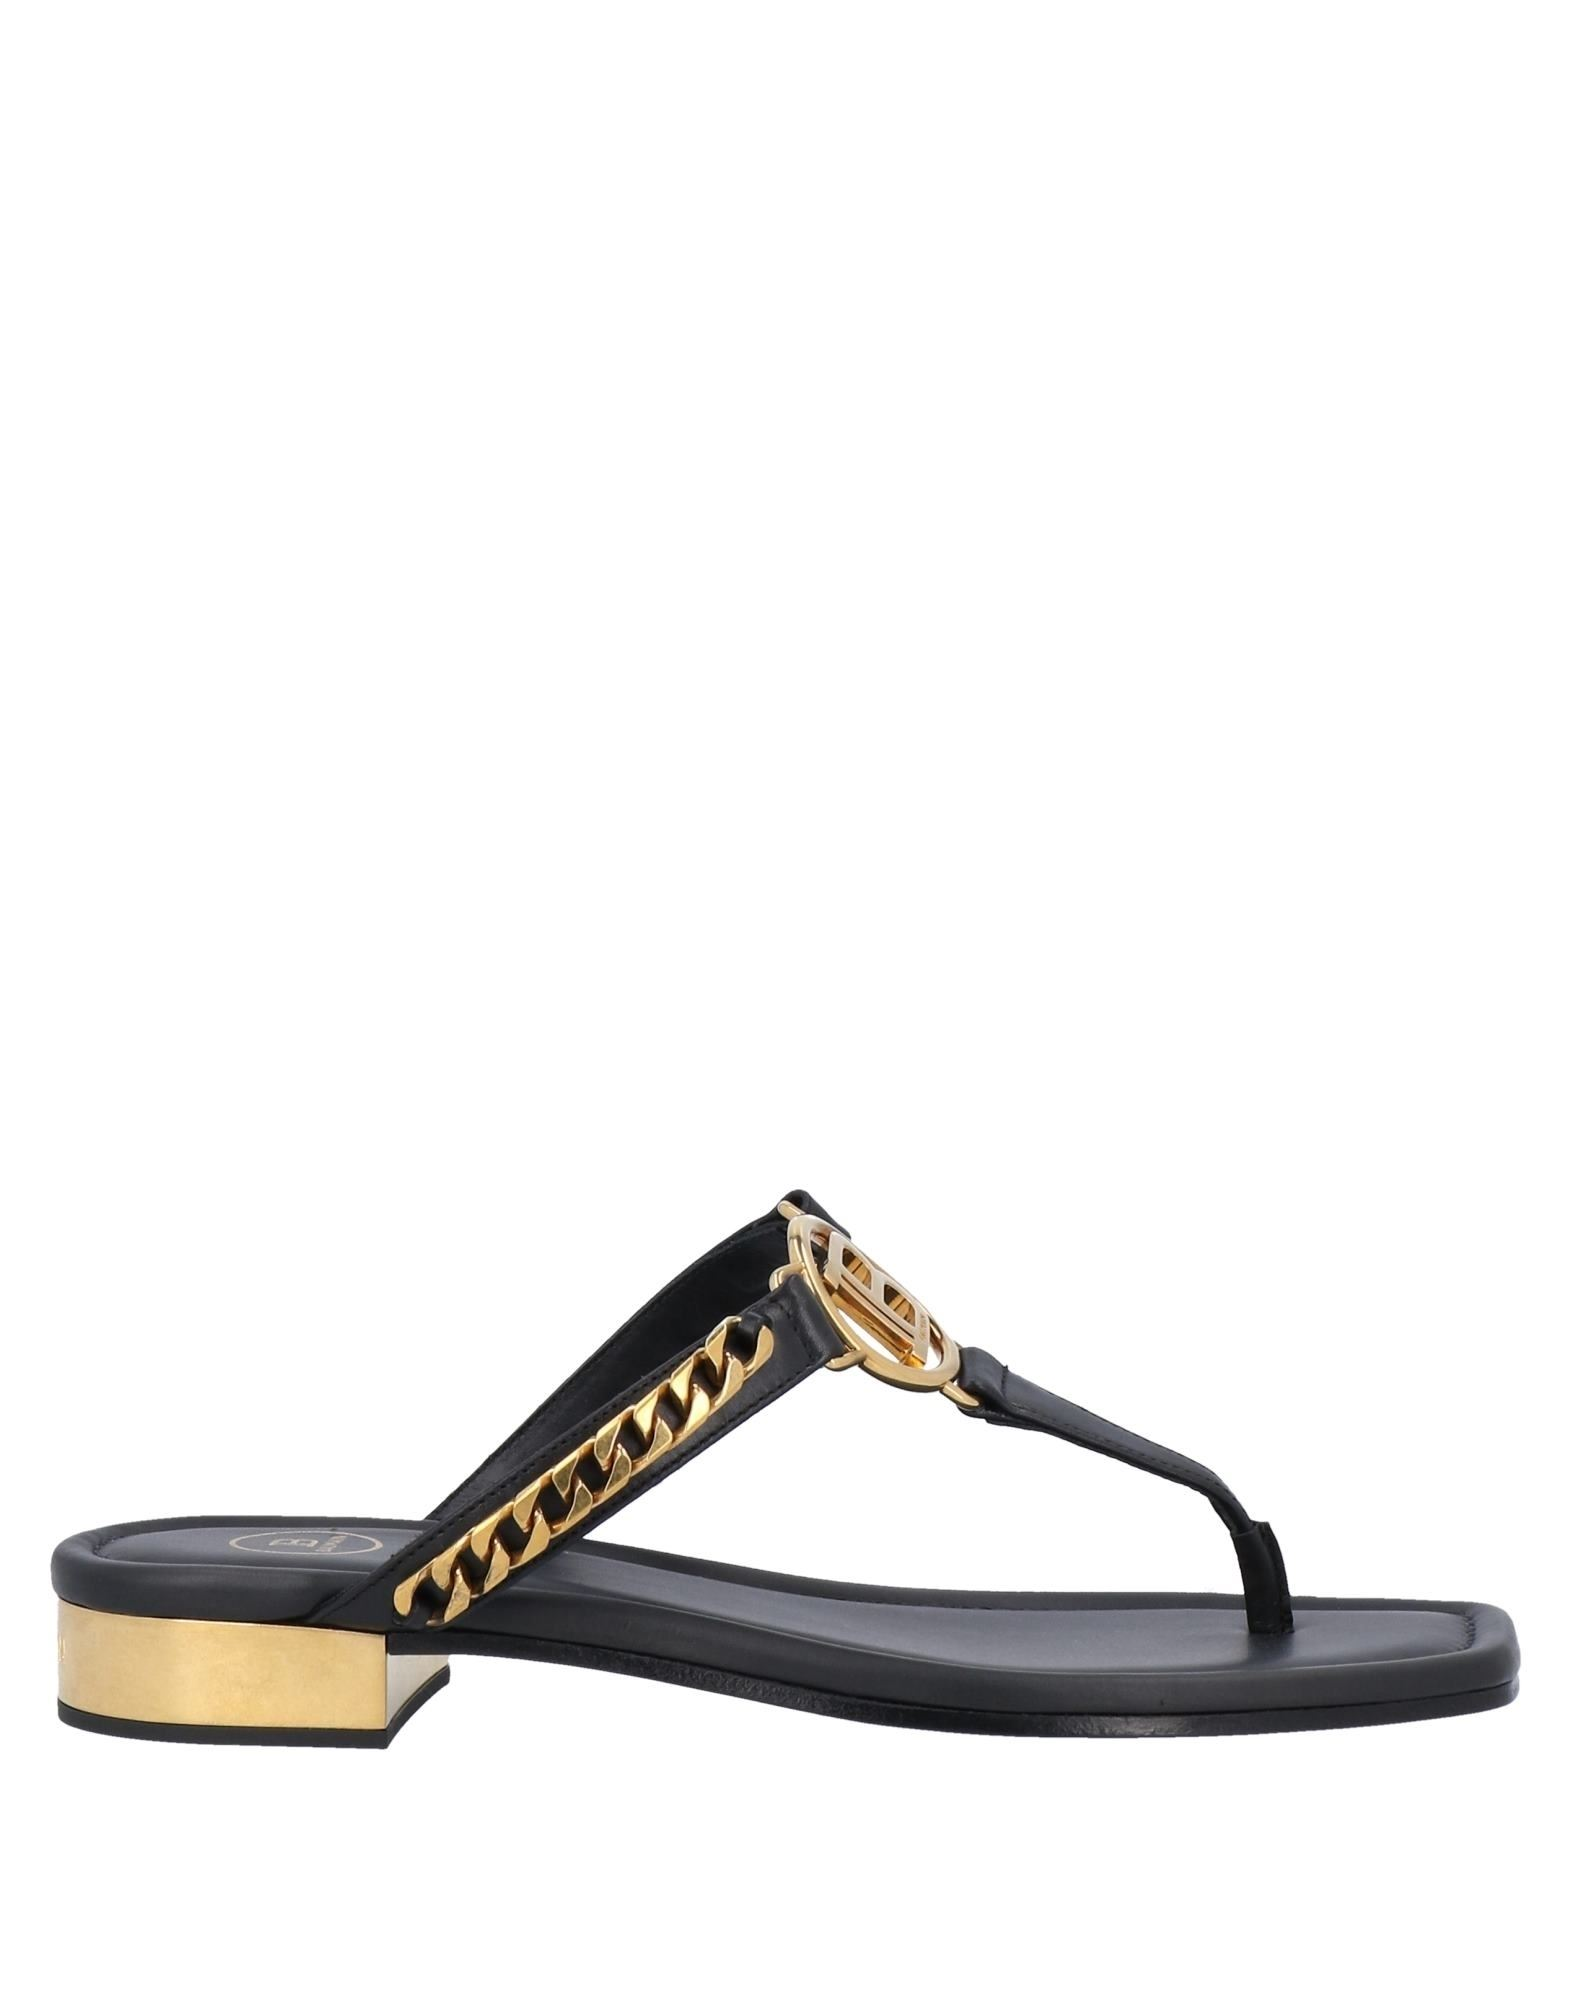 BALMAIN Toe strap sandals. leather, logo, metal applications, solid color, round toeline, flat, leather lining, leather sole, contains non-textile parts of animal origin. Calfskin